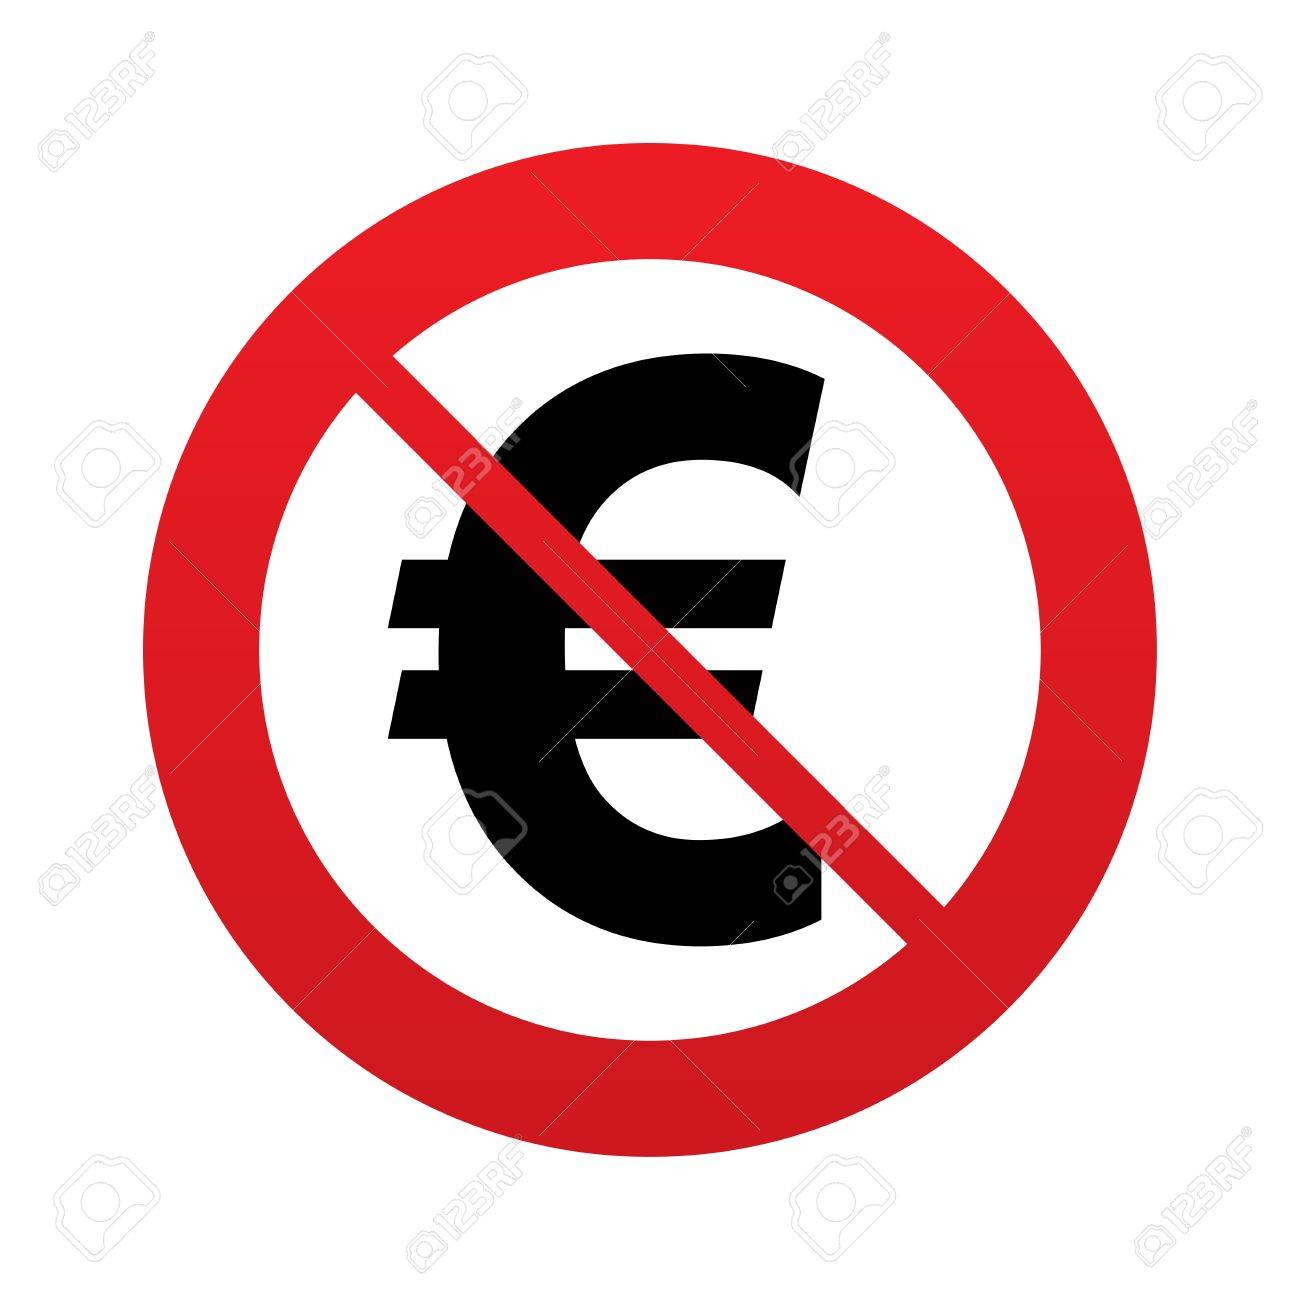 No Euro Sign Icon. EUR Currency Symbol. Money Label. Red Prohibition..  Stock Photo, Picture And Royalty Free Image. Image 25833691.